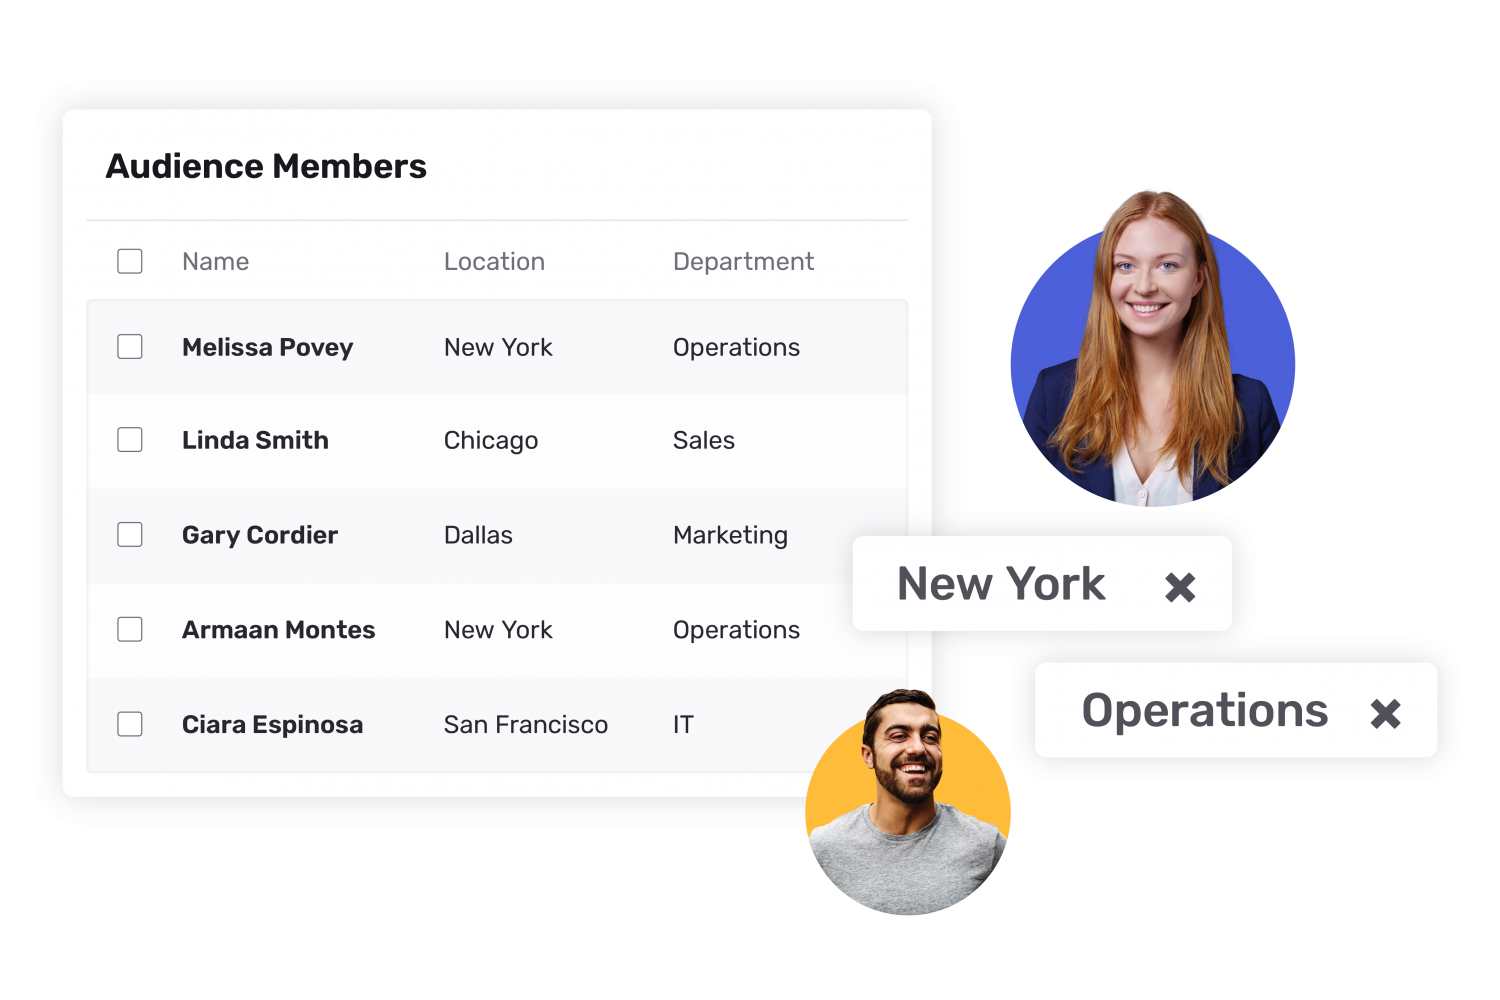 Different employee info being shown, their location and departmental segments on full display